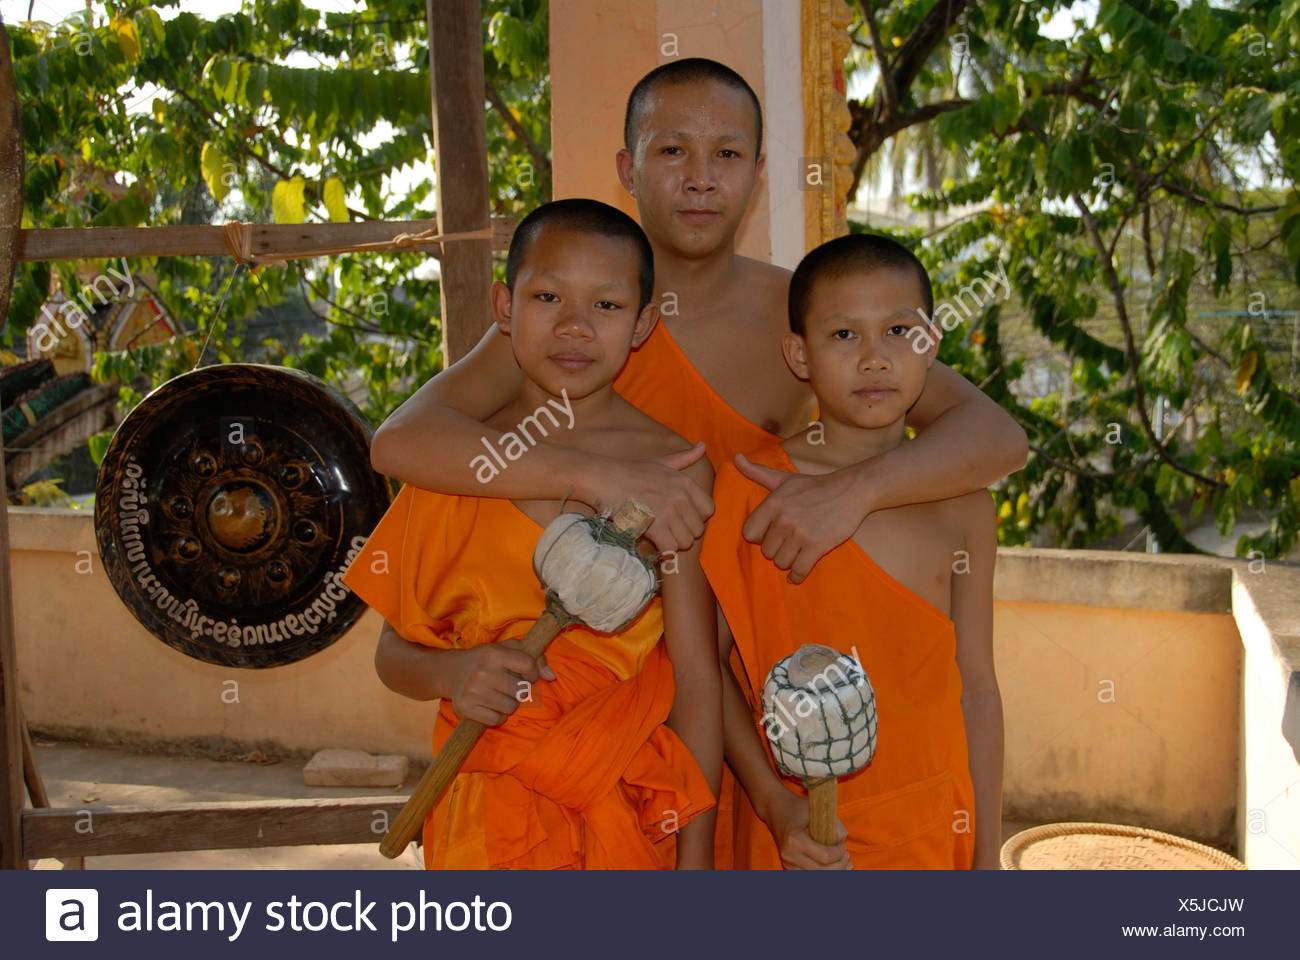 Buddhist monk embracing two novice monks, Wat Phonxay, Vientiane, Laos, Southeast Asia - Stock Image